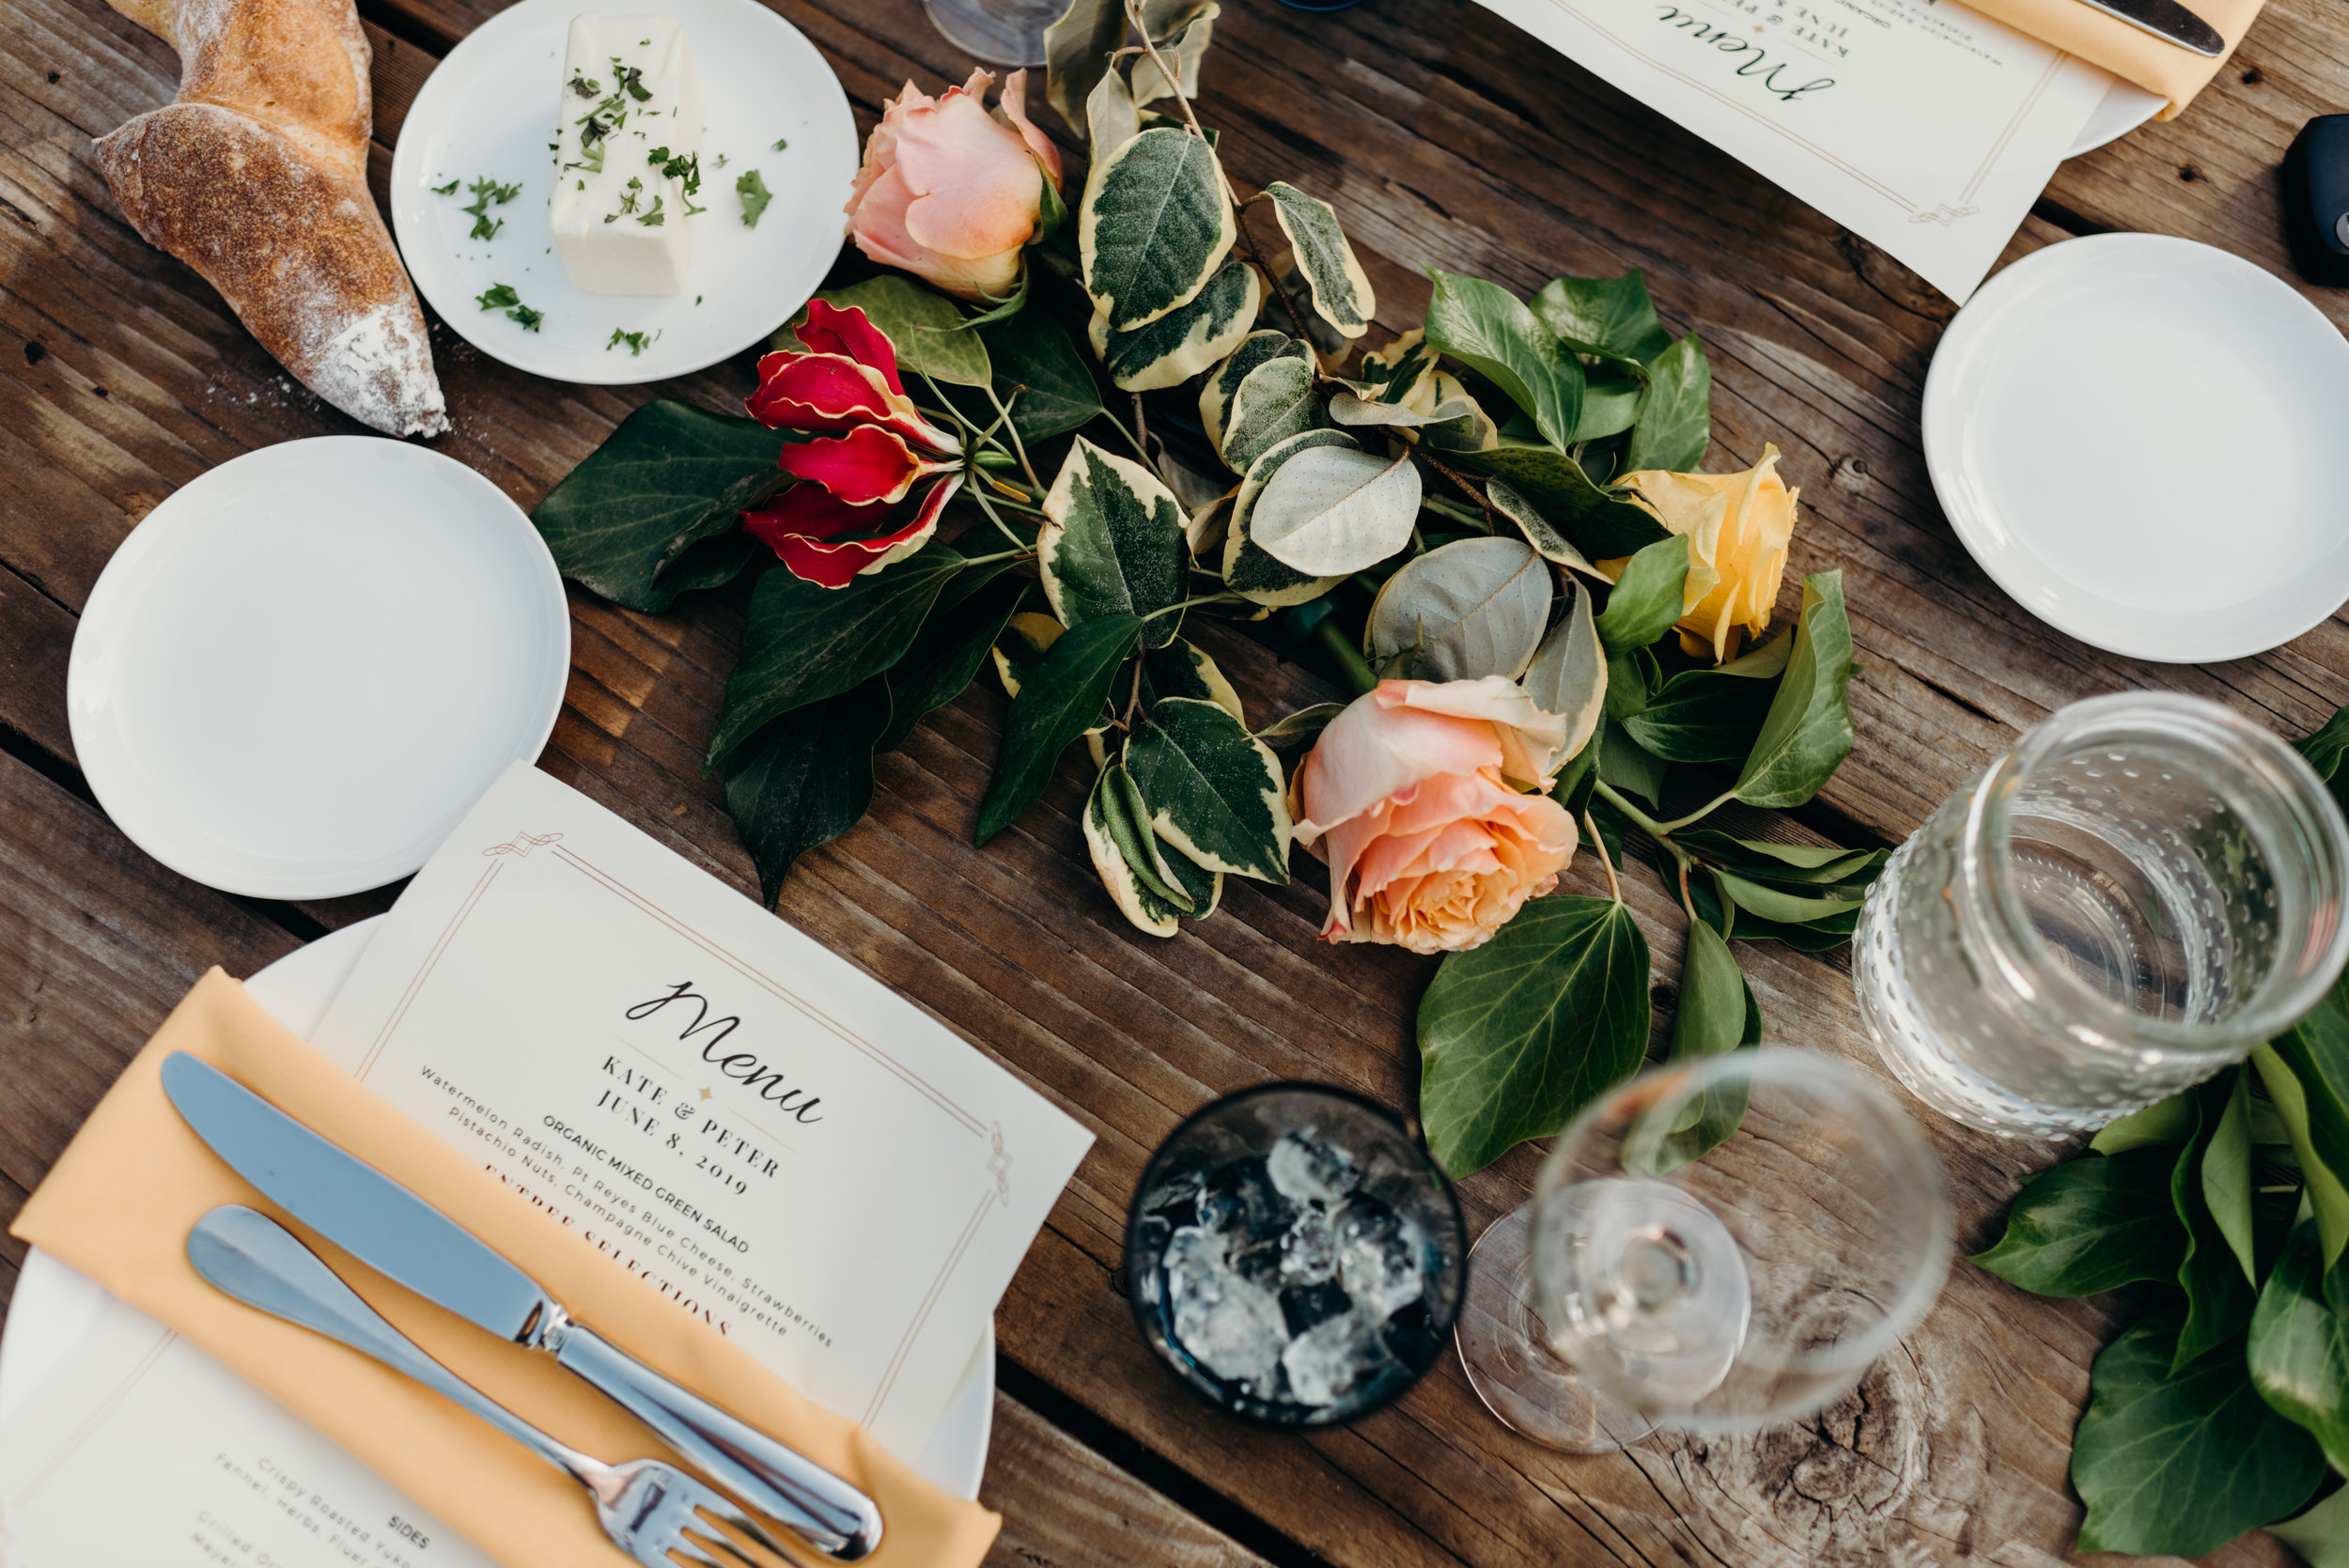 Ceremony and Reception Details - The personal touches that make the day yours.